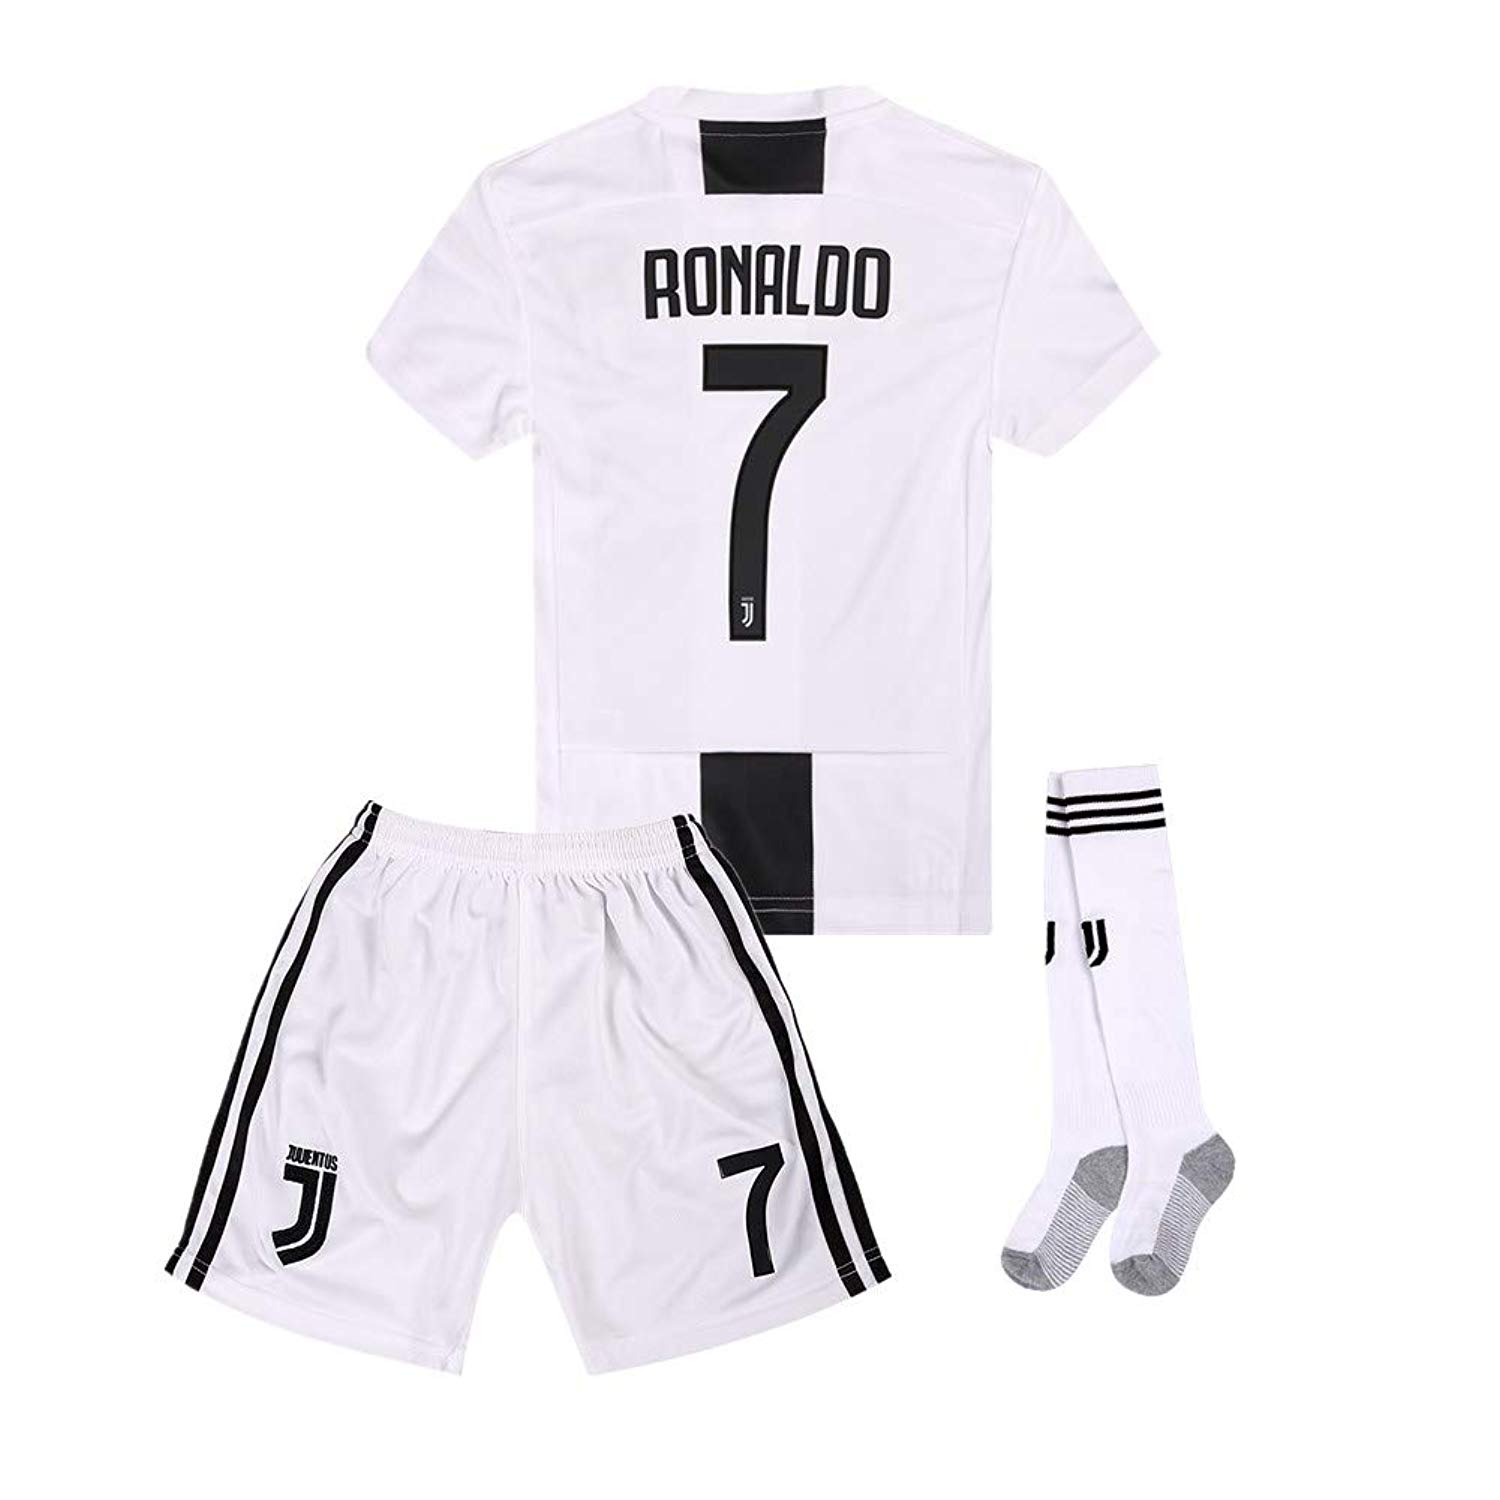 low priced 65dfa 103a1 Cheap Ronaldo Shorts, find Ronaldo Shorts deals on line at ...